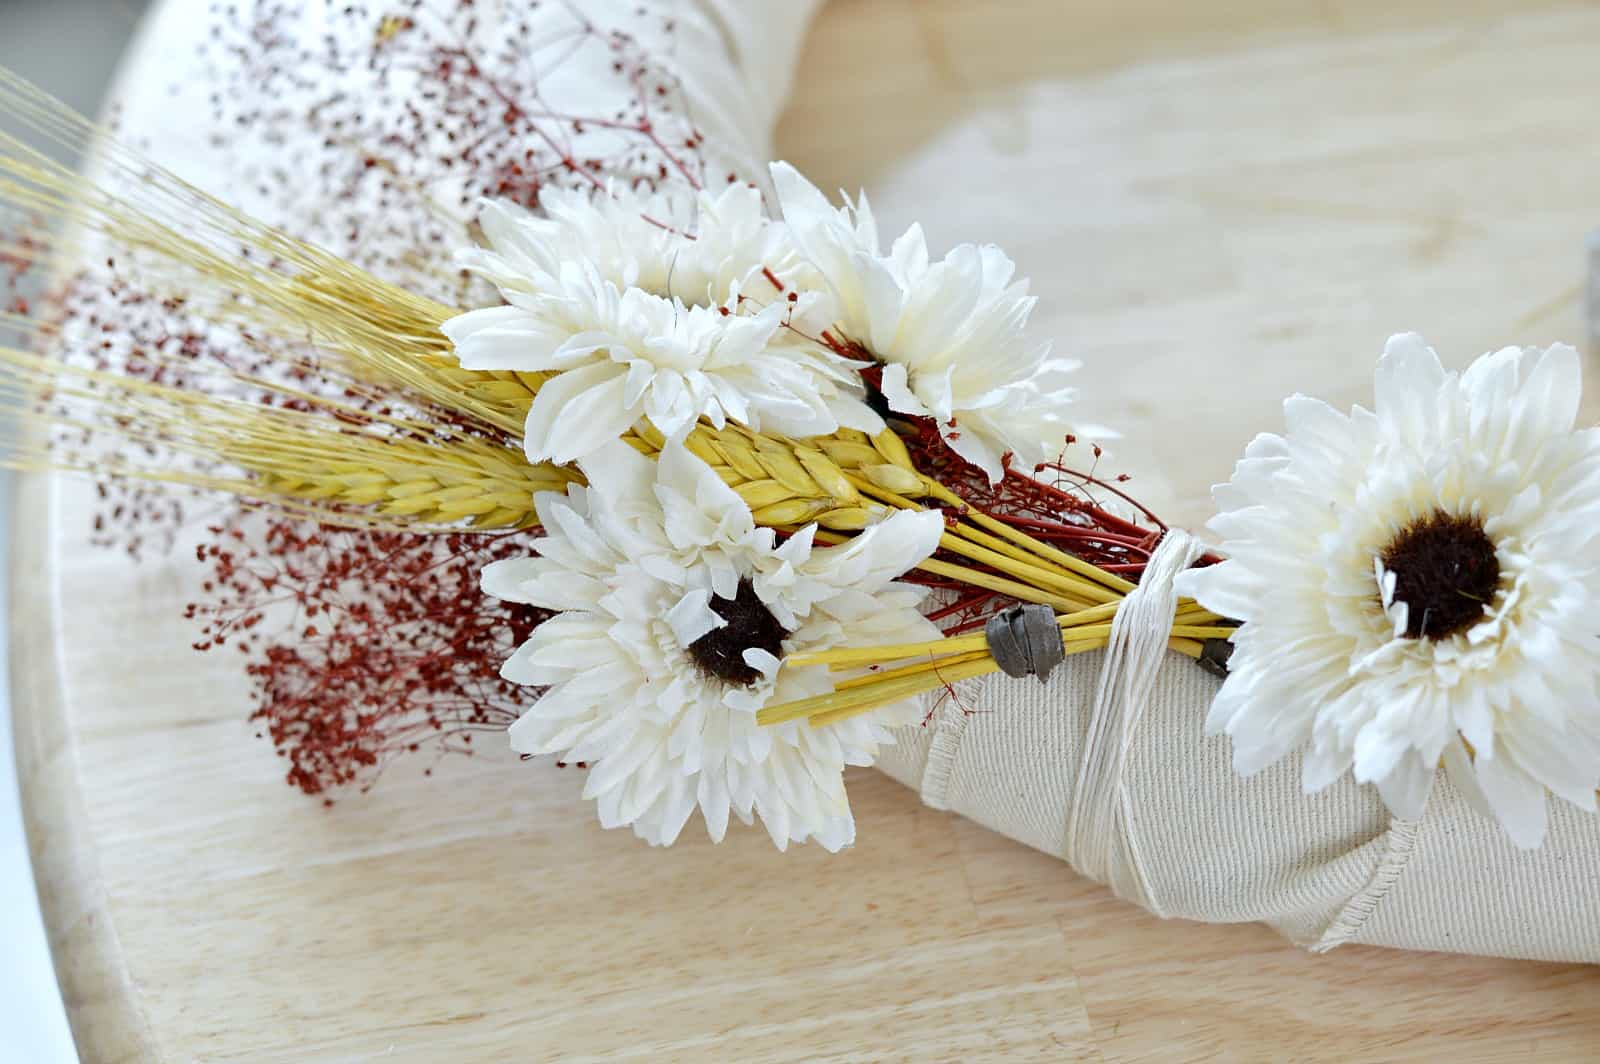 tie wheat to the wreath using twine or string